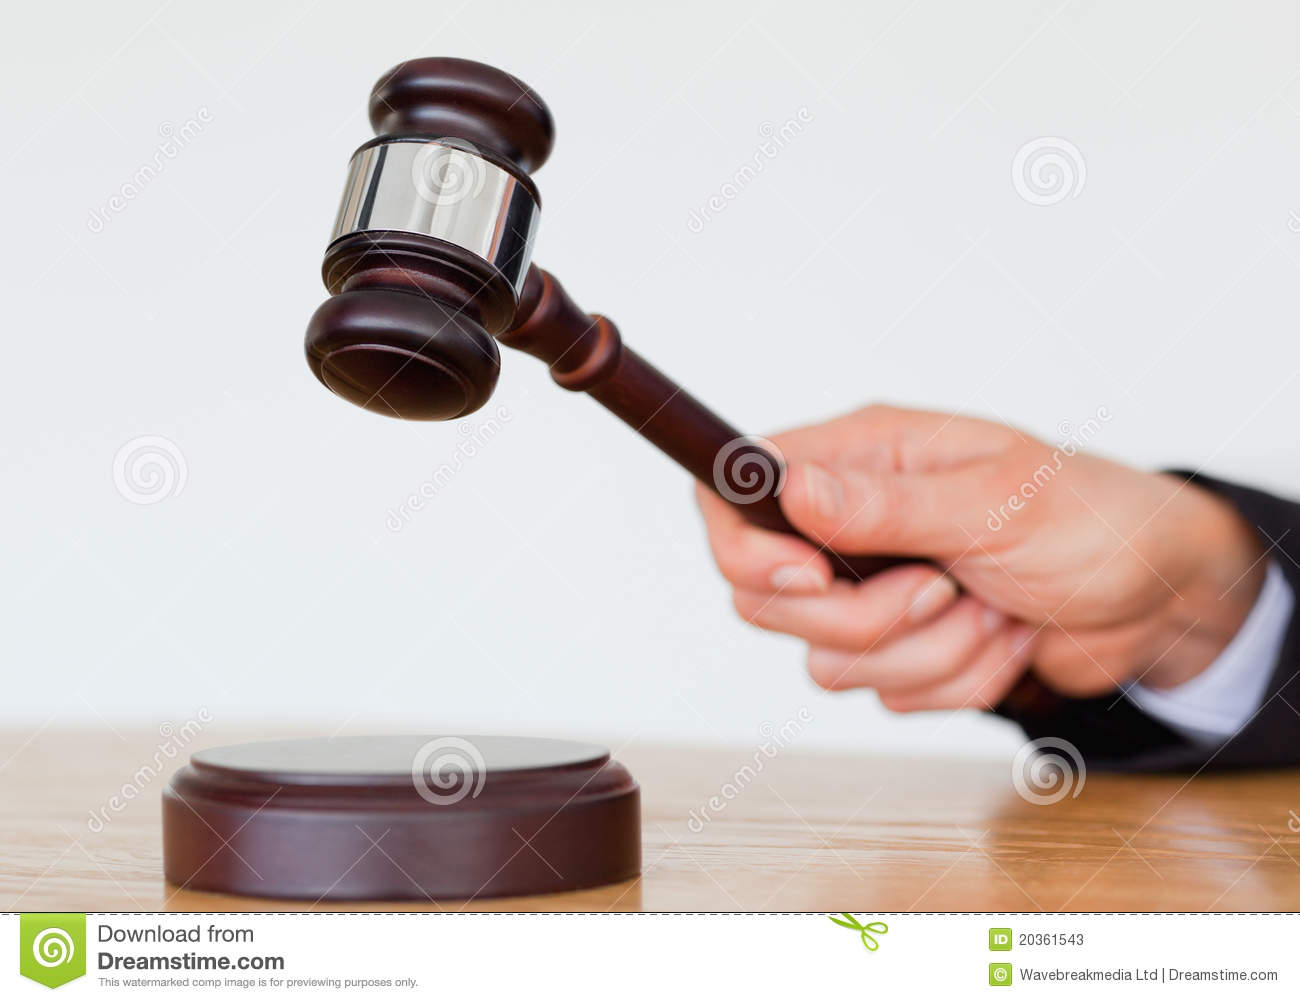 Hand knocking a gavel